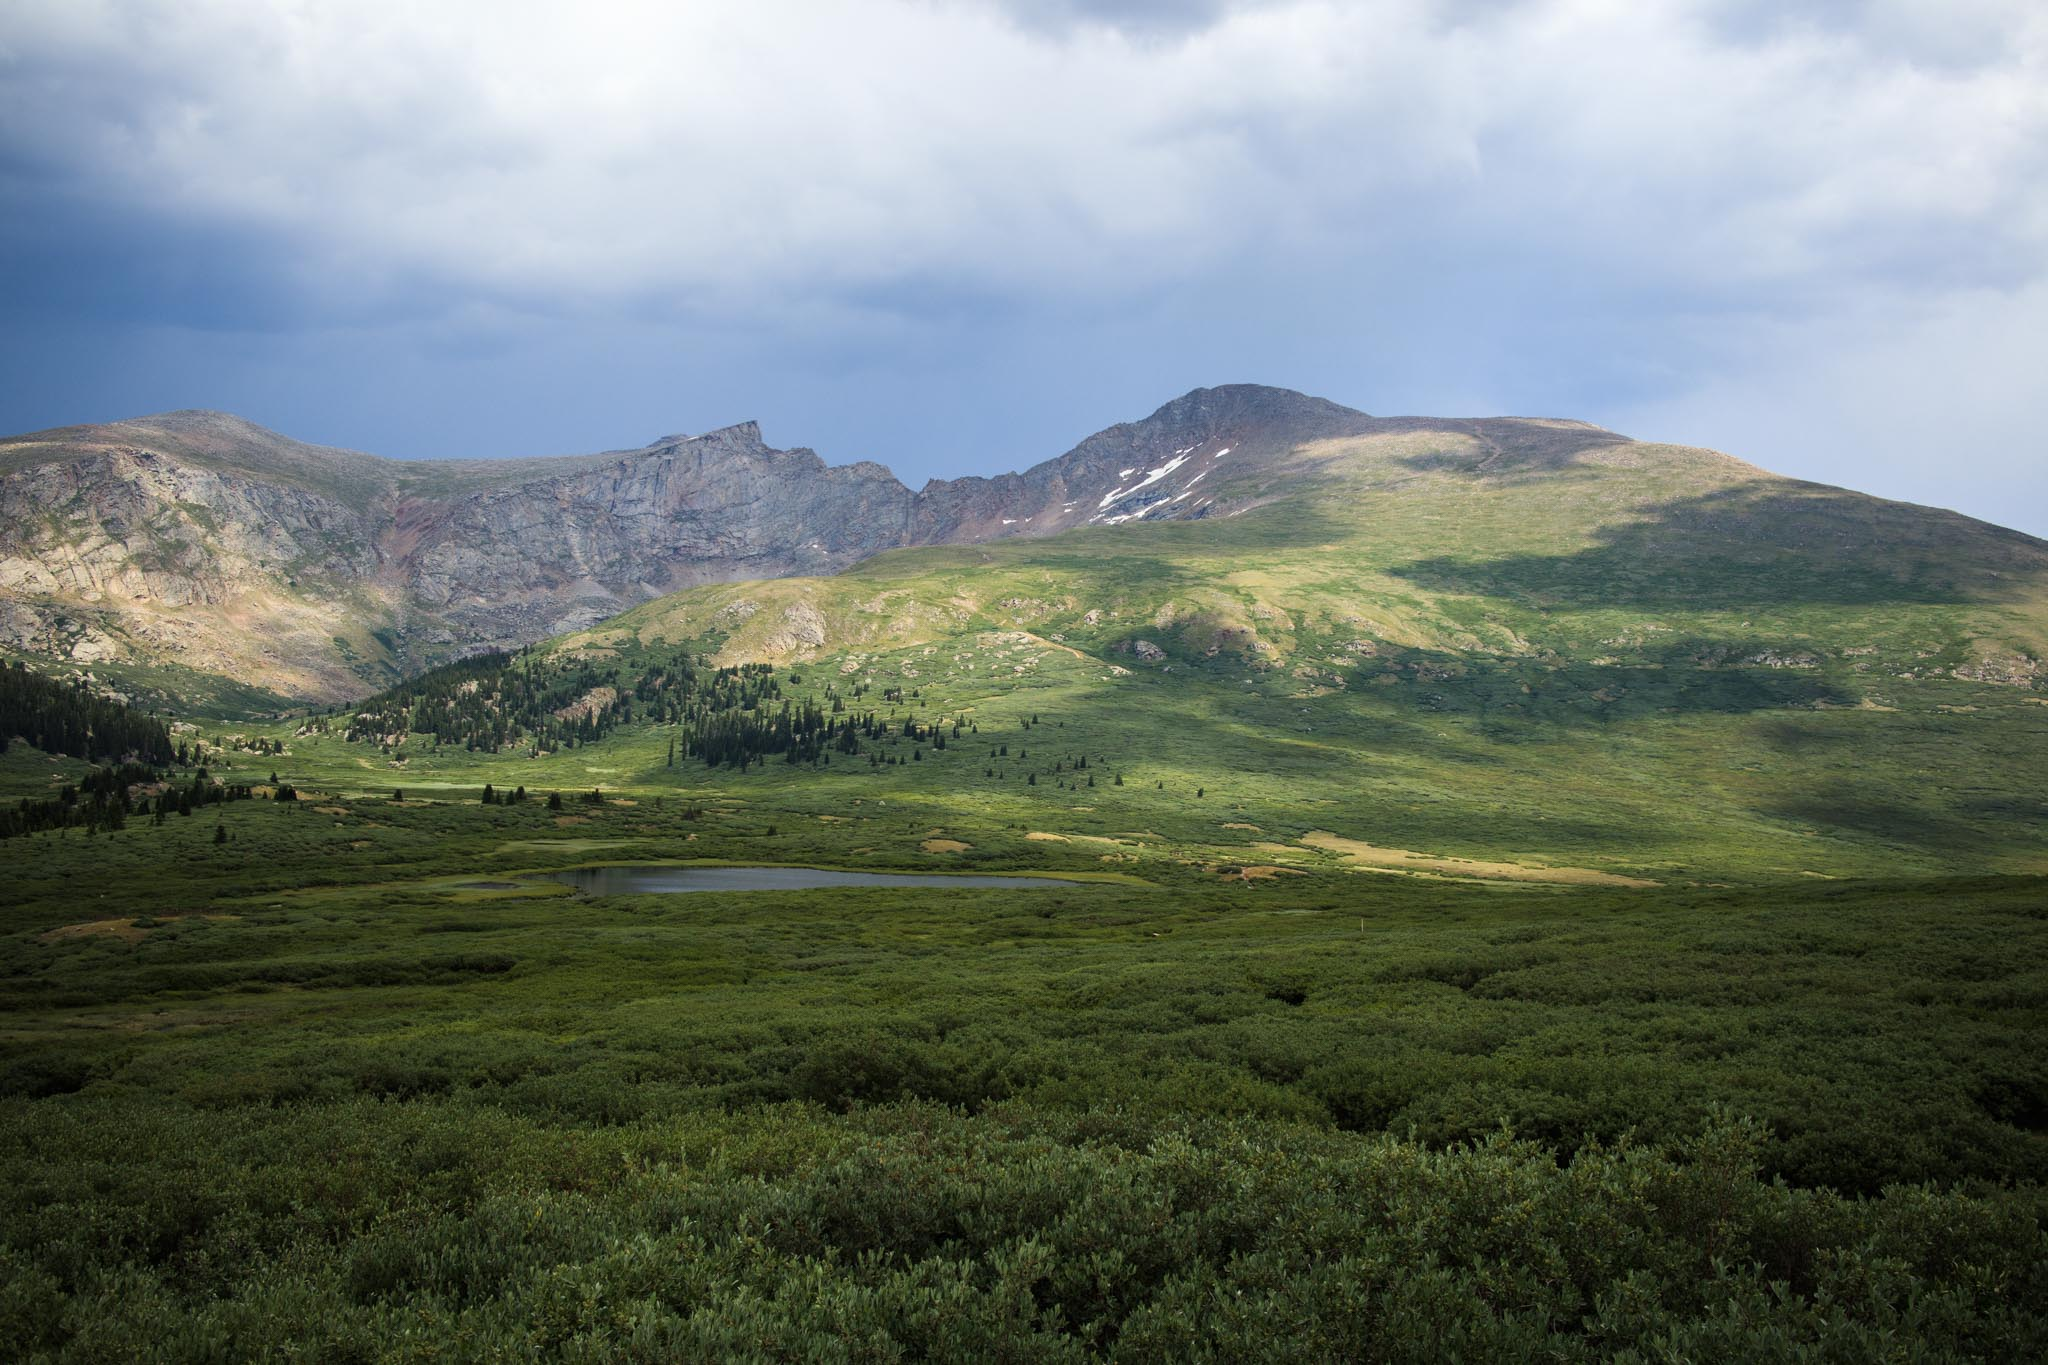 Mount Bierstadt sits at 14,060 feet and is considered a Class 2 mountain to hike.